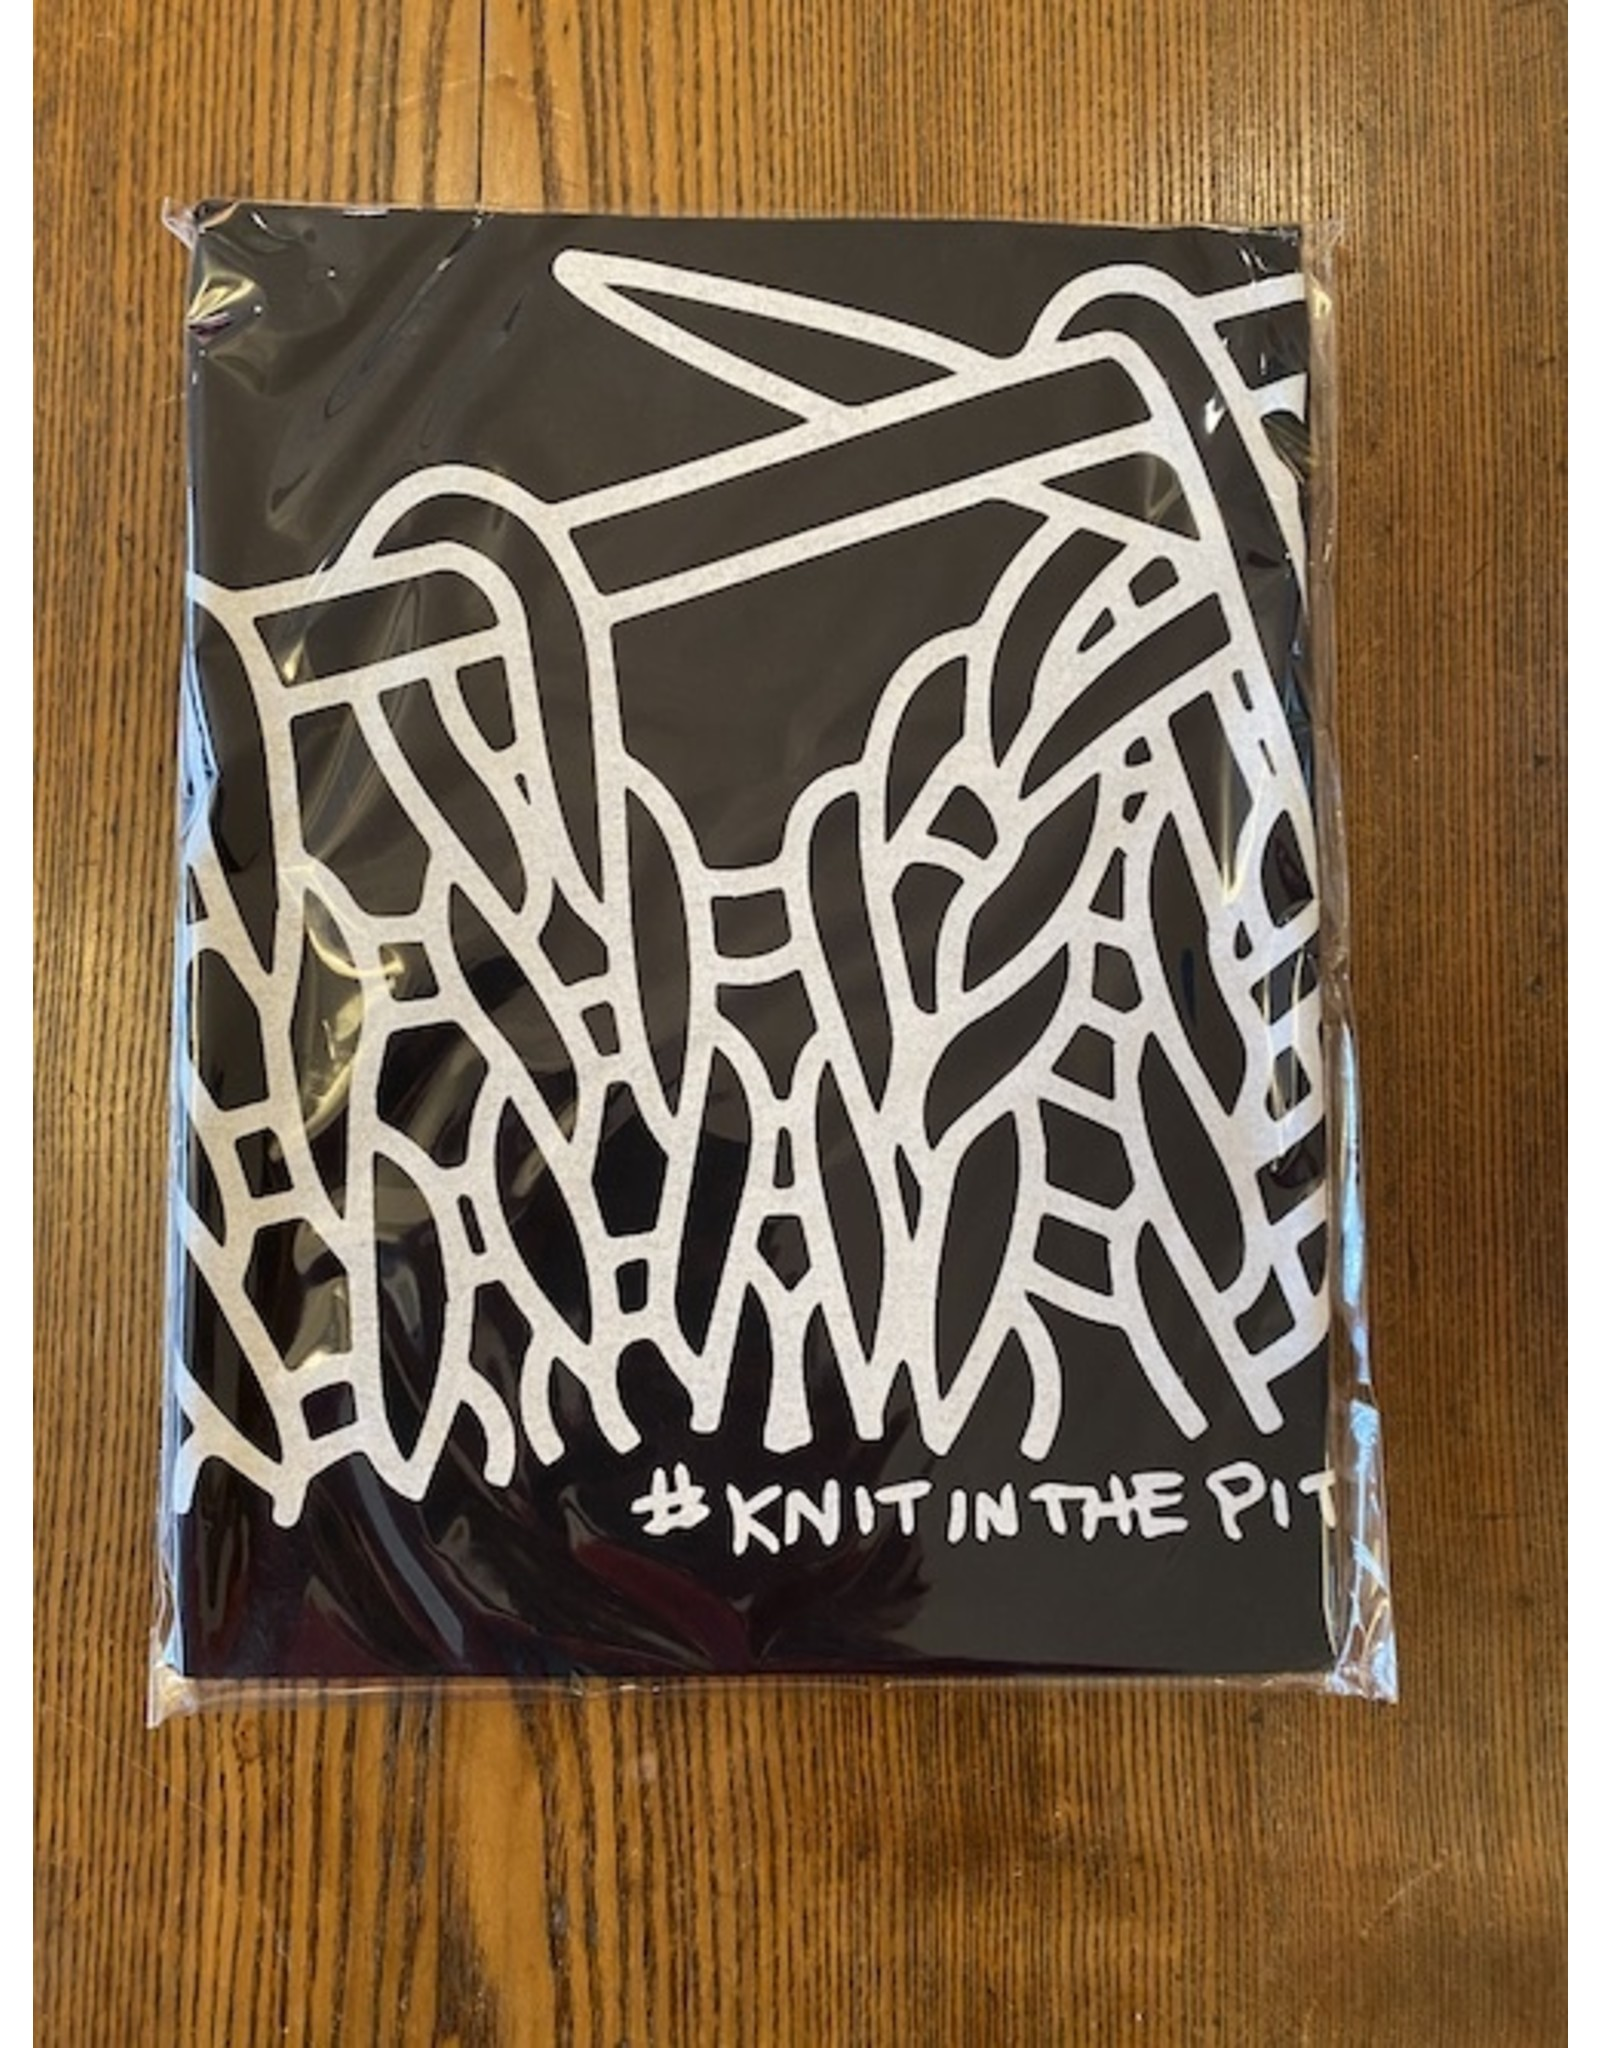 Knit in the Pit Knit in the Pit tee